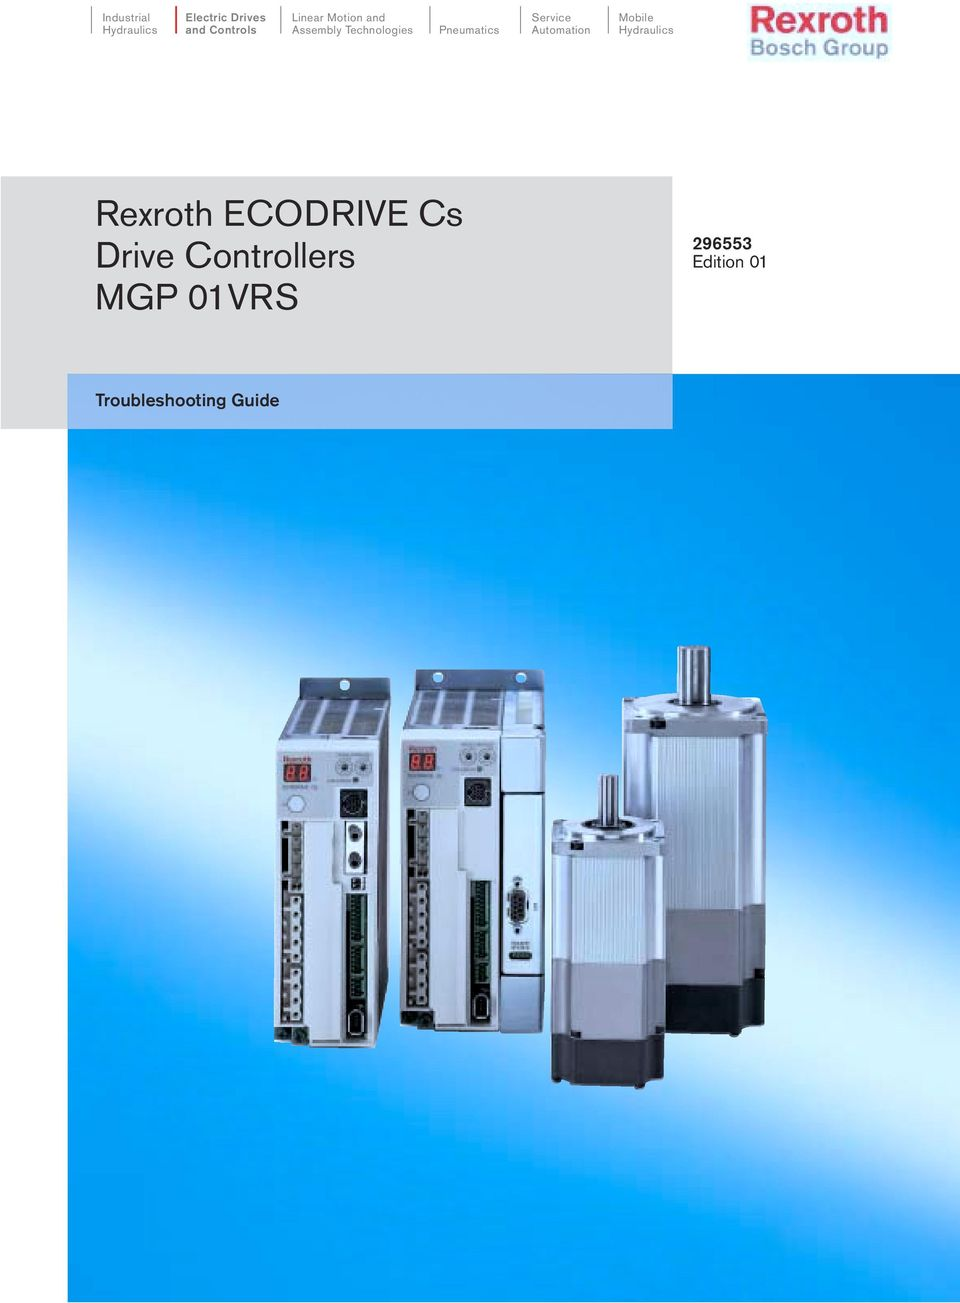 What Causes Indramat Error F229 This Particular Ecodrive